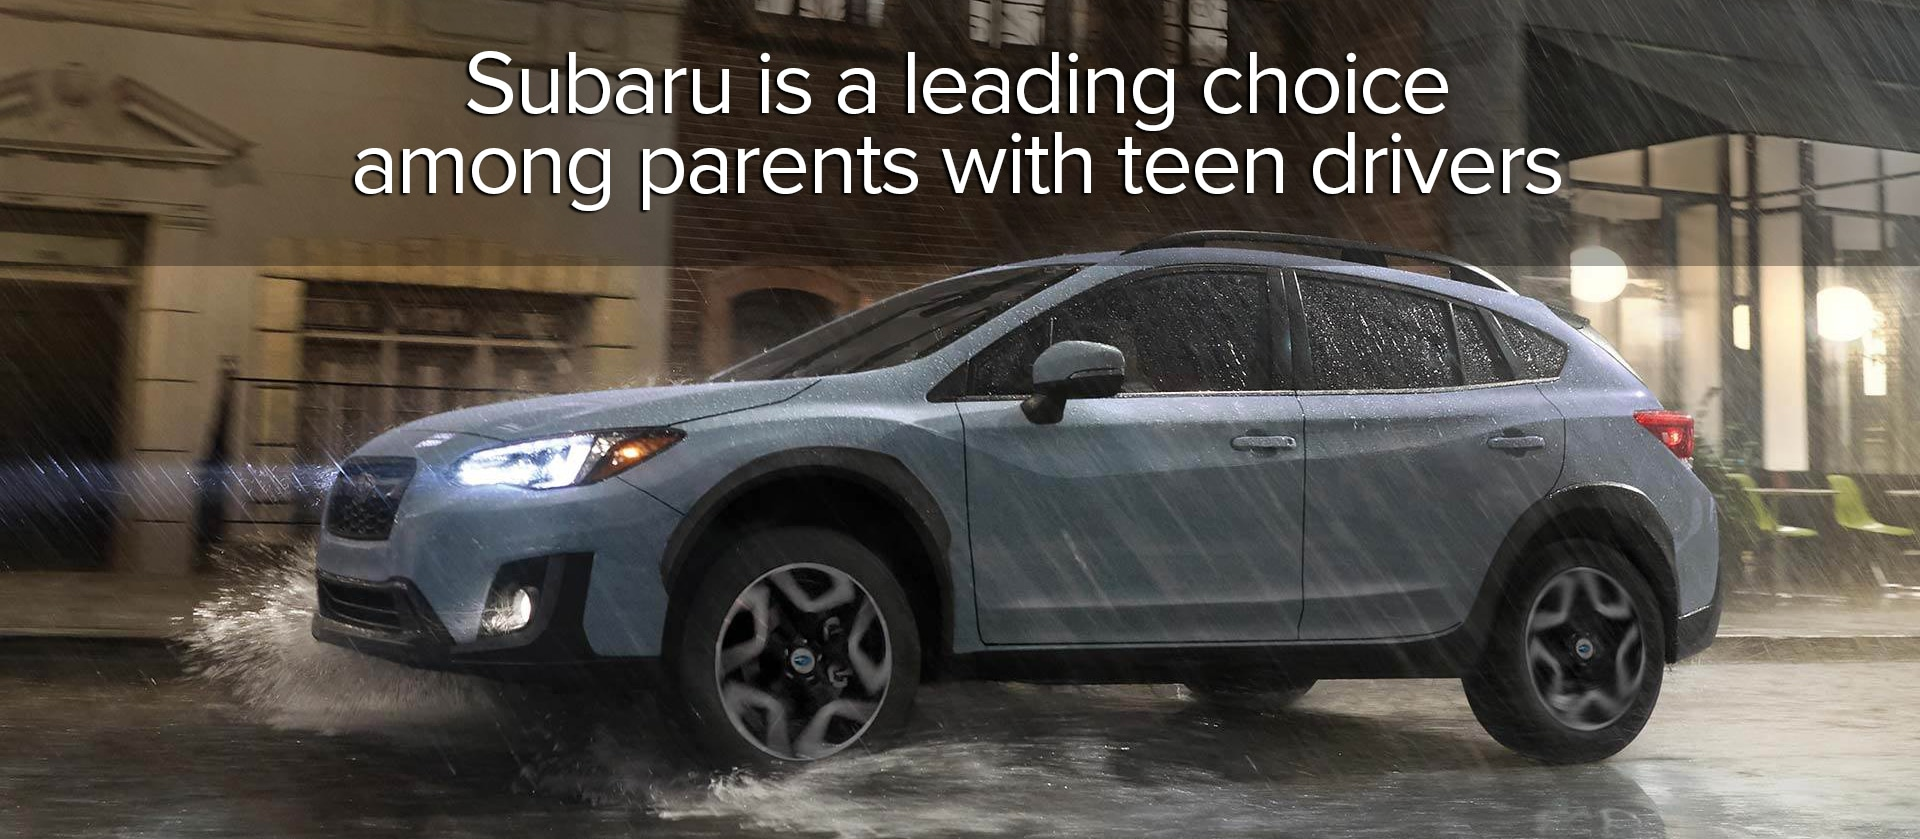 Chicago | Why Subaru Cars Are One of the Safest Cars